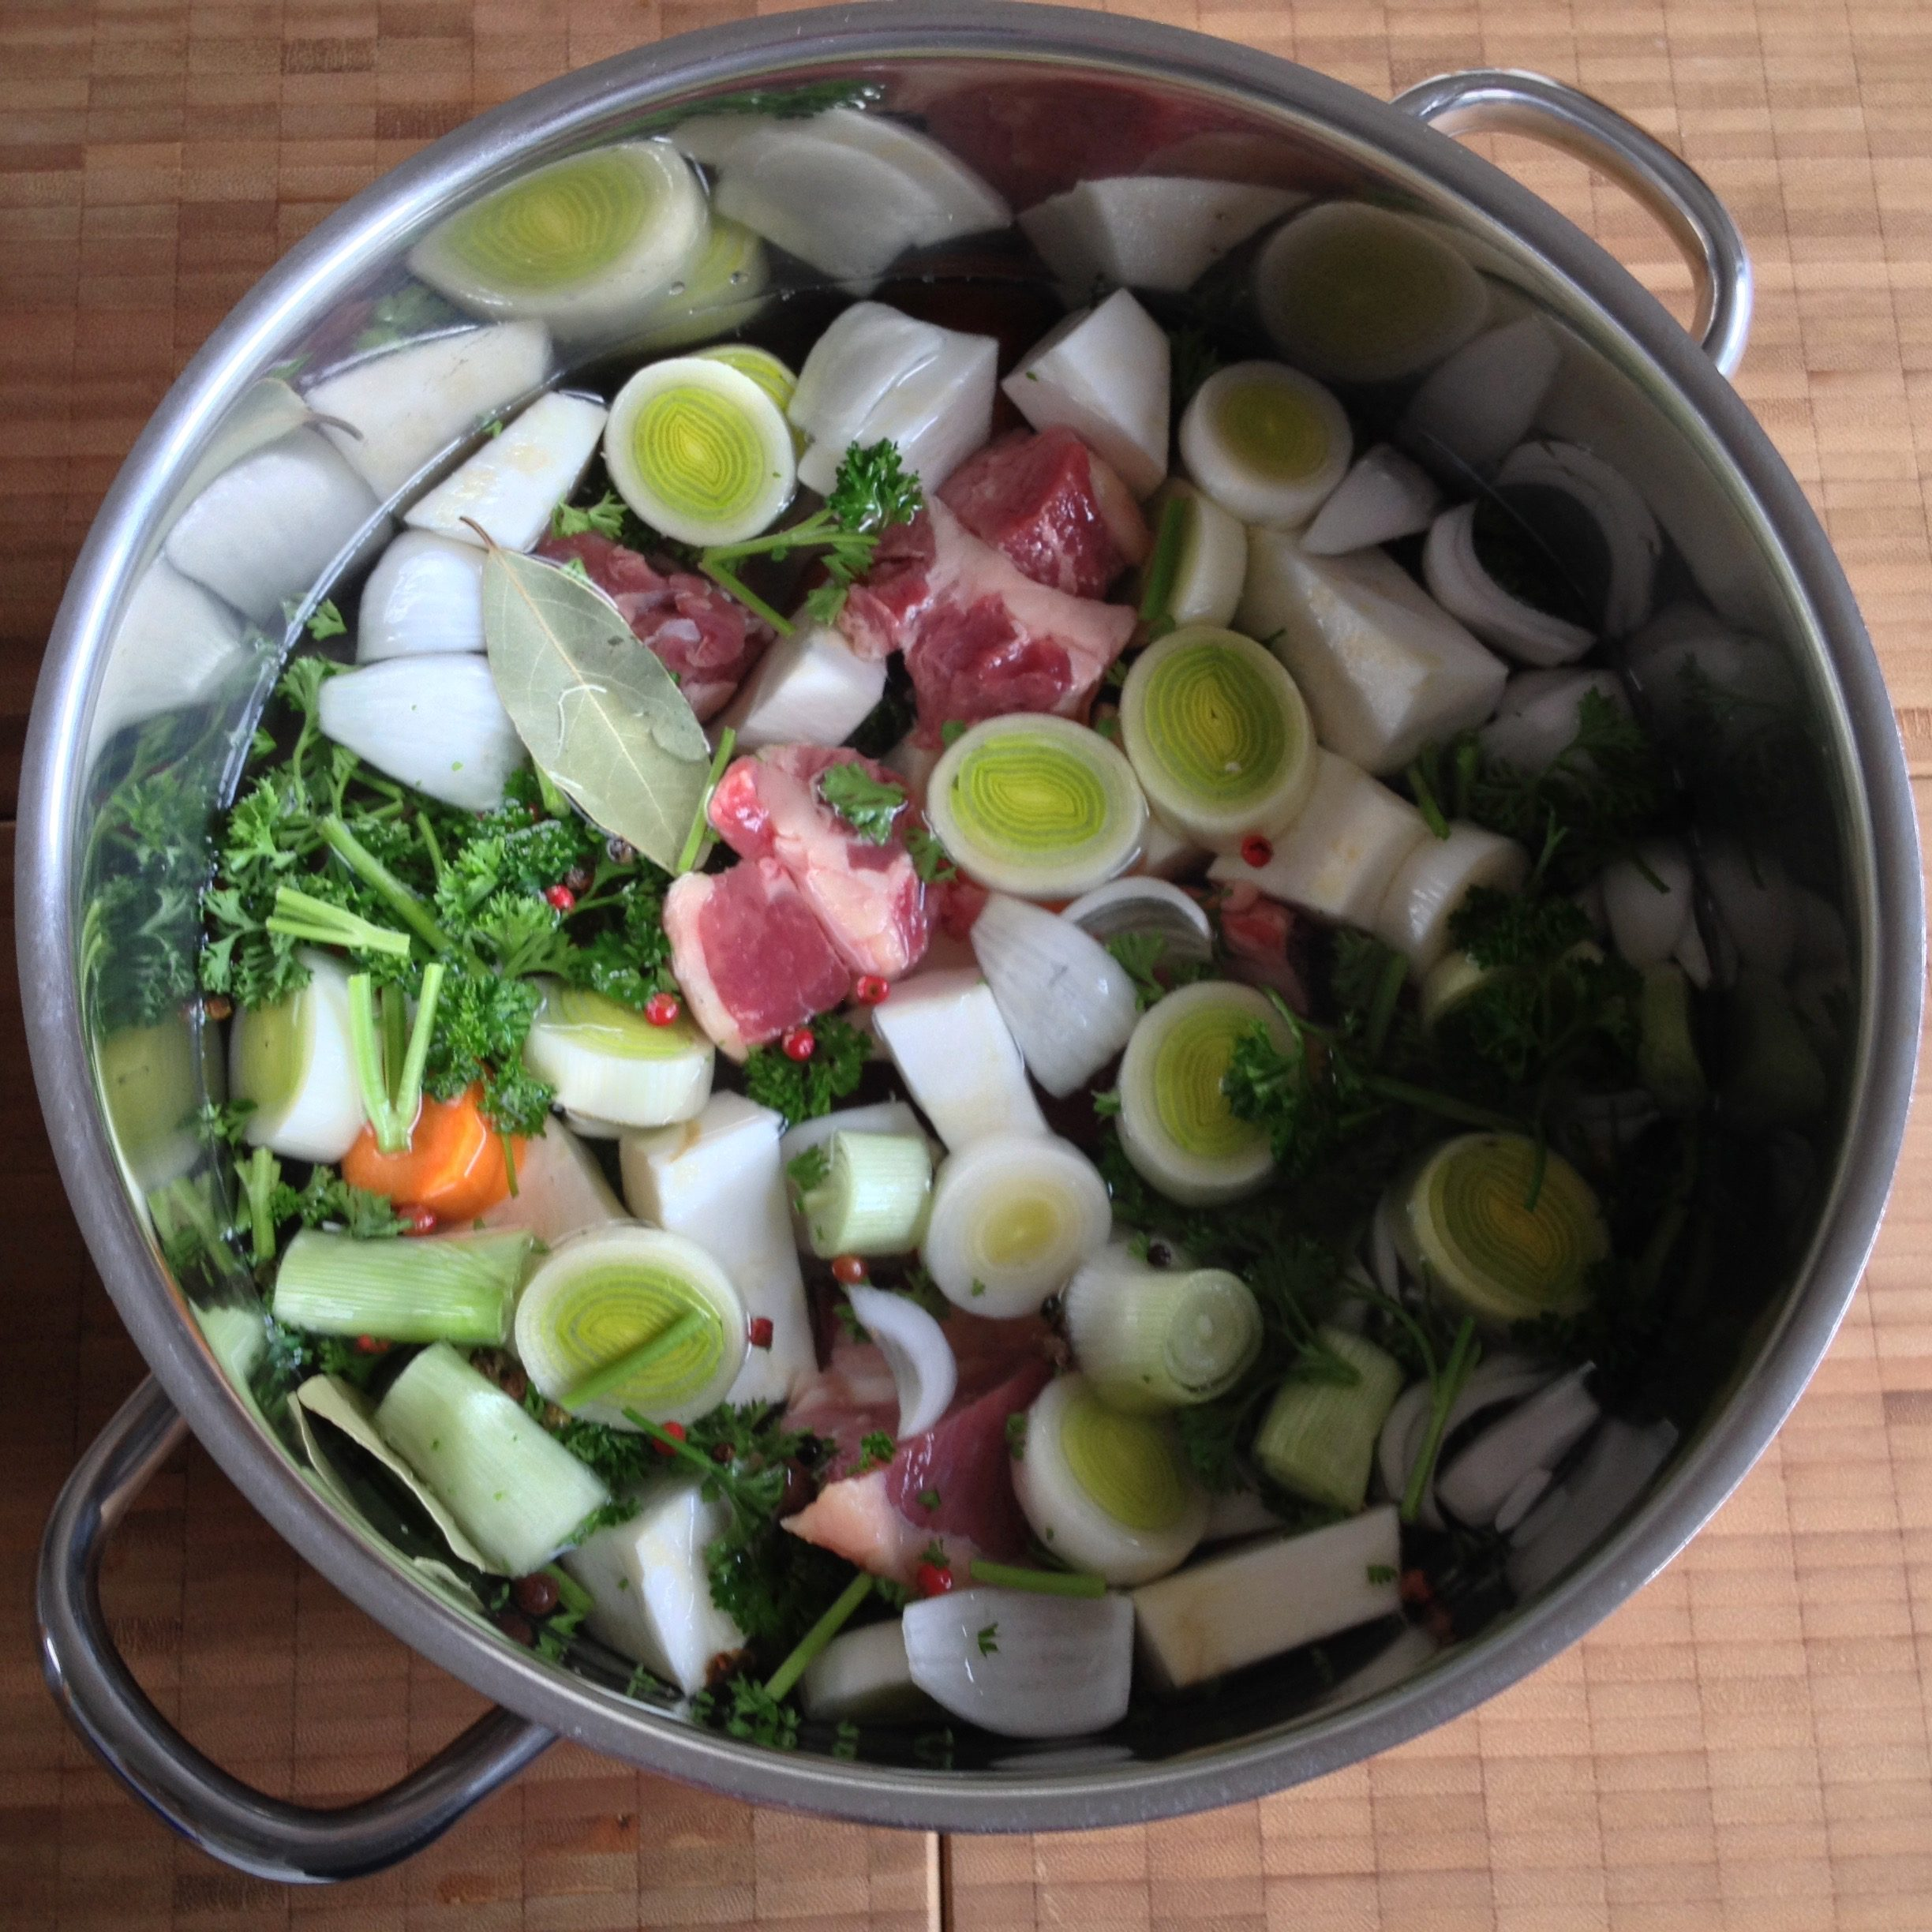 basic beef broth - basic soup!